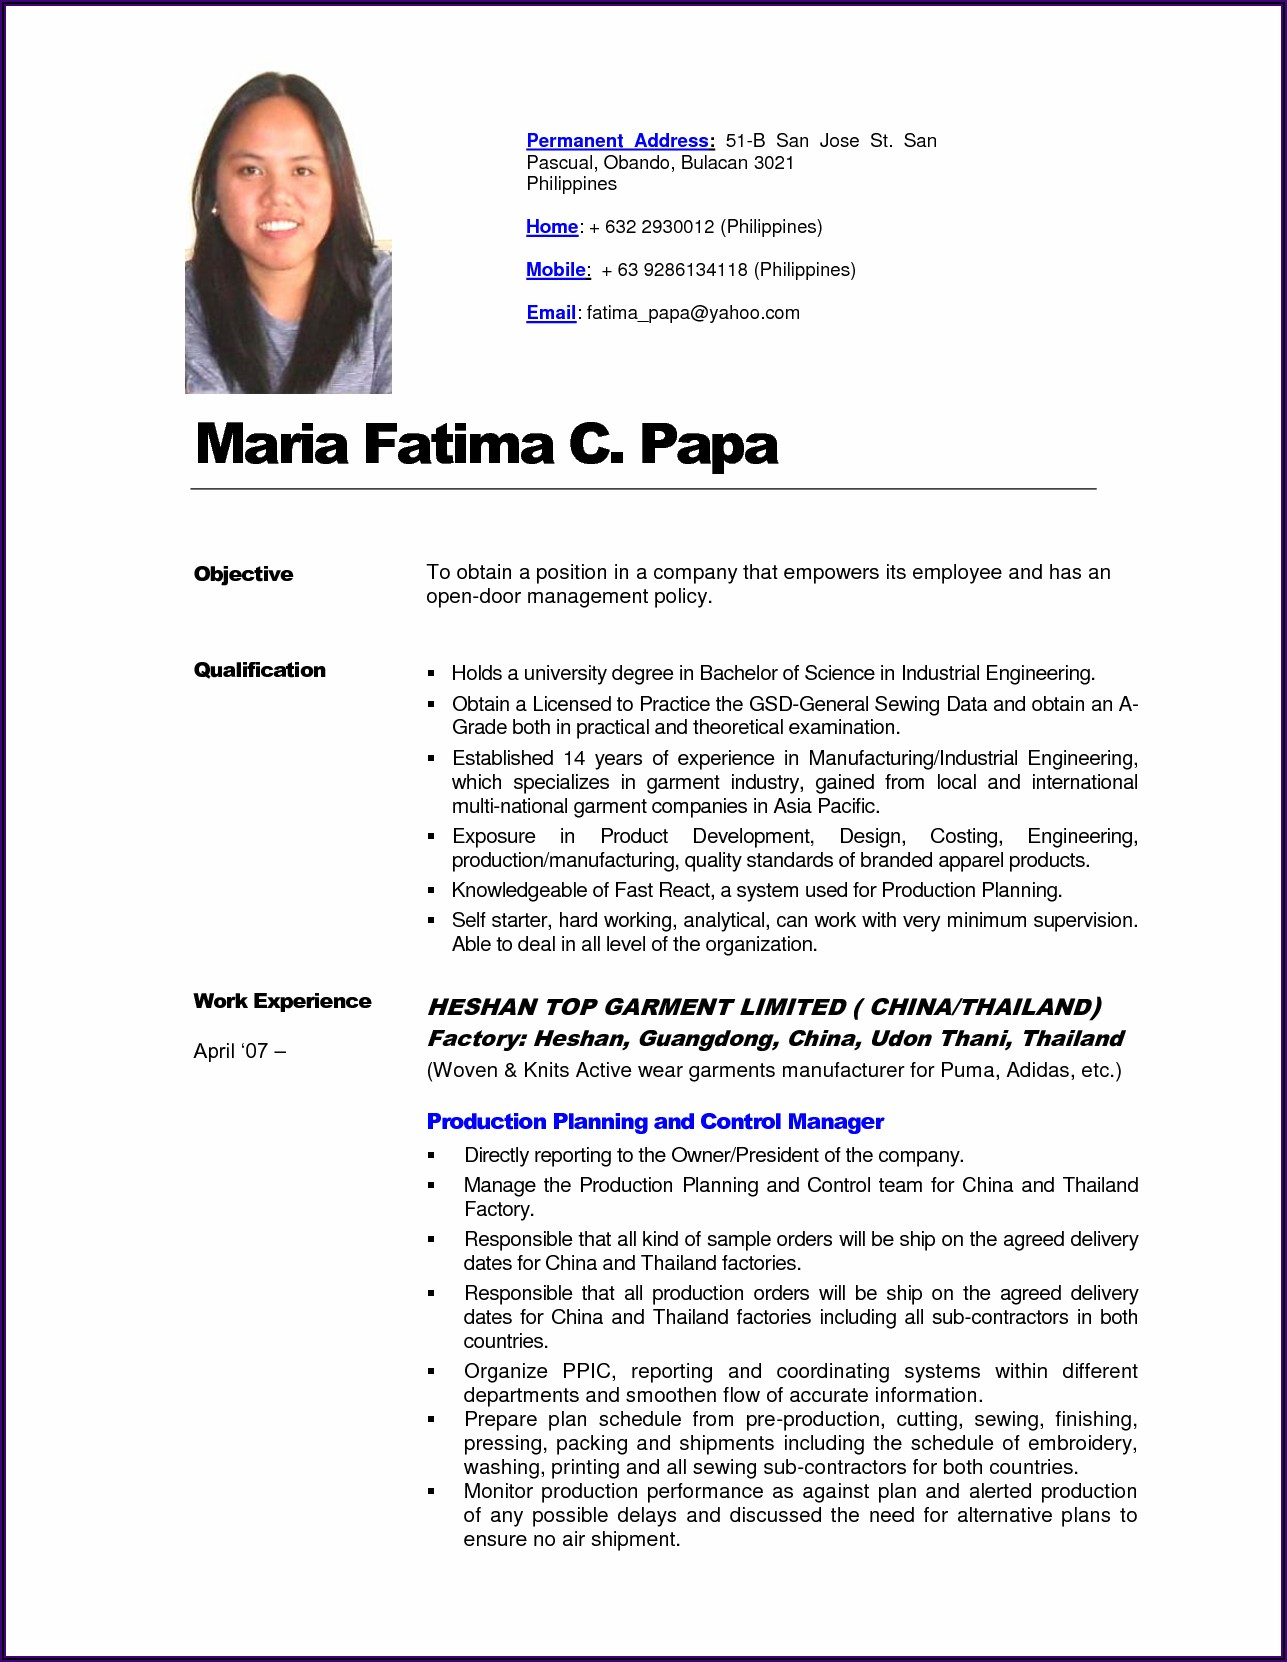 Sample Resume For Newly Registered Nurse Philippines